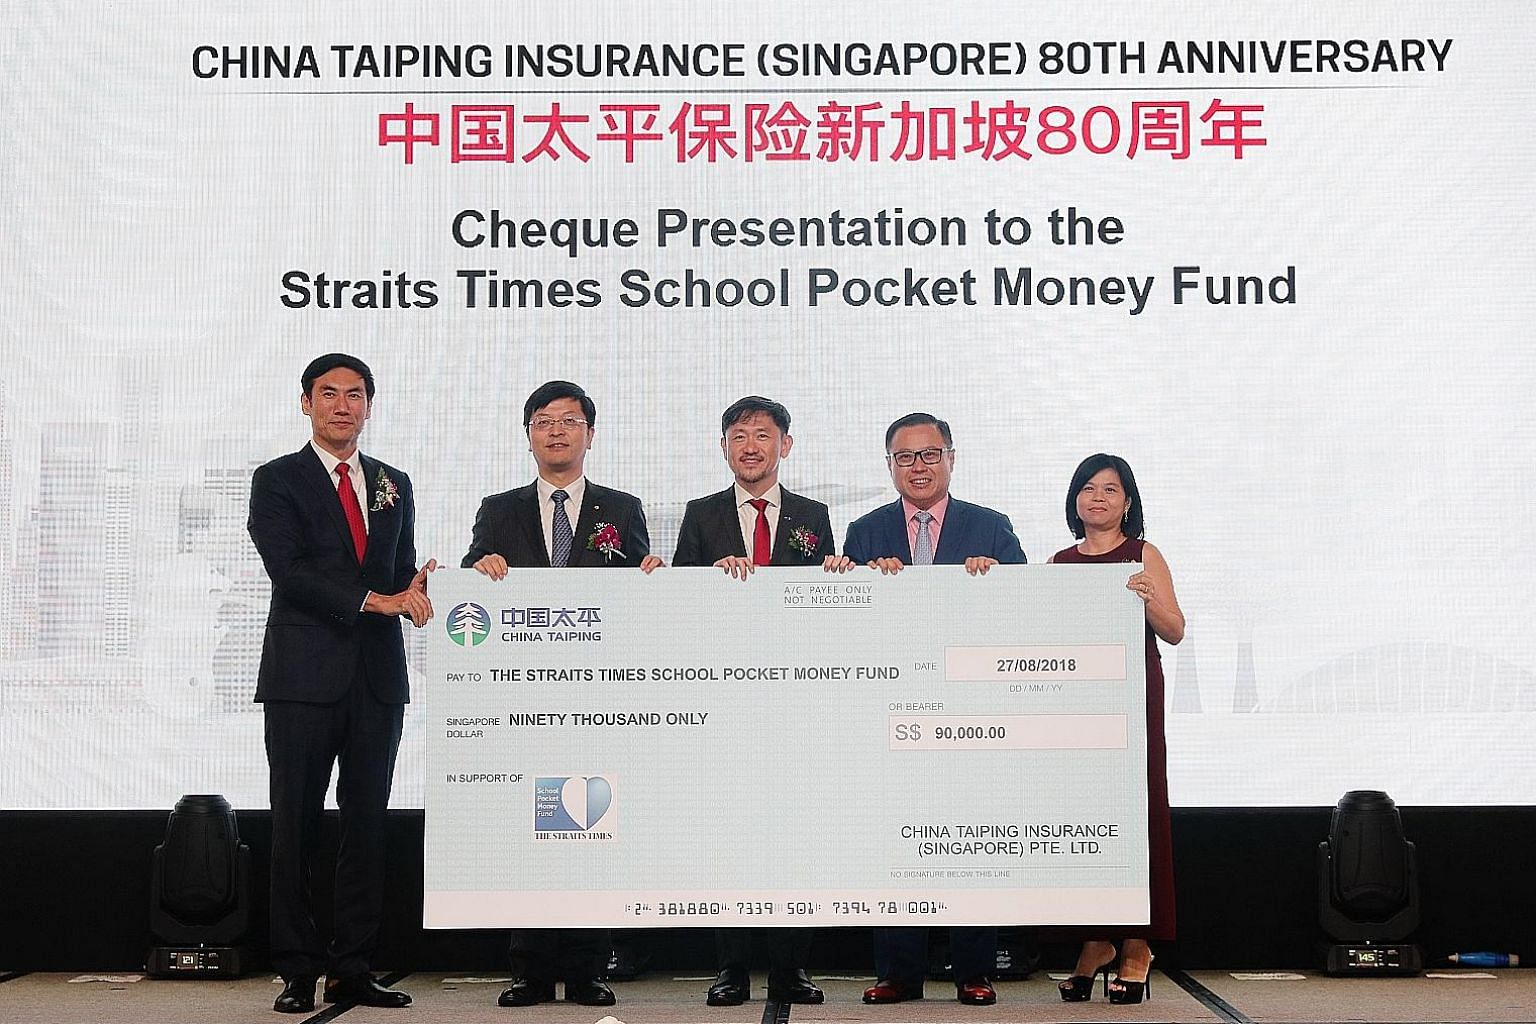 From left: China Taiping Insurance Singapore general manager Yang Yamei; China Taiping Insurance Singapore chairman Hong Bo; Singapore Press Holdings deputy chief executive Anthony Tan; The Straits Times School Pocket Money Fund trustee Arthur Lang a